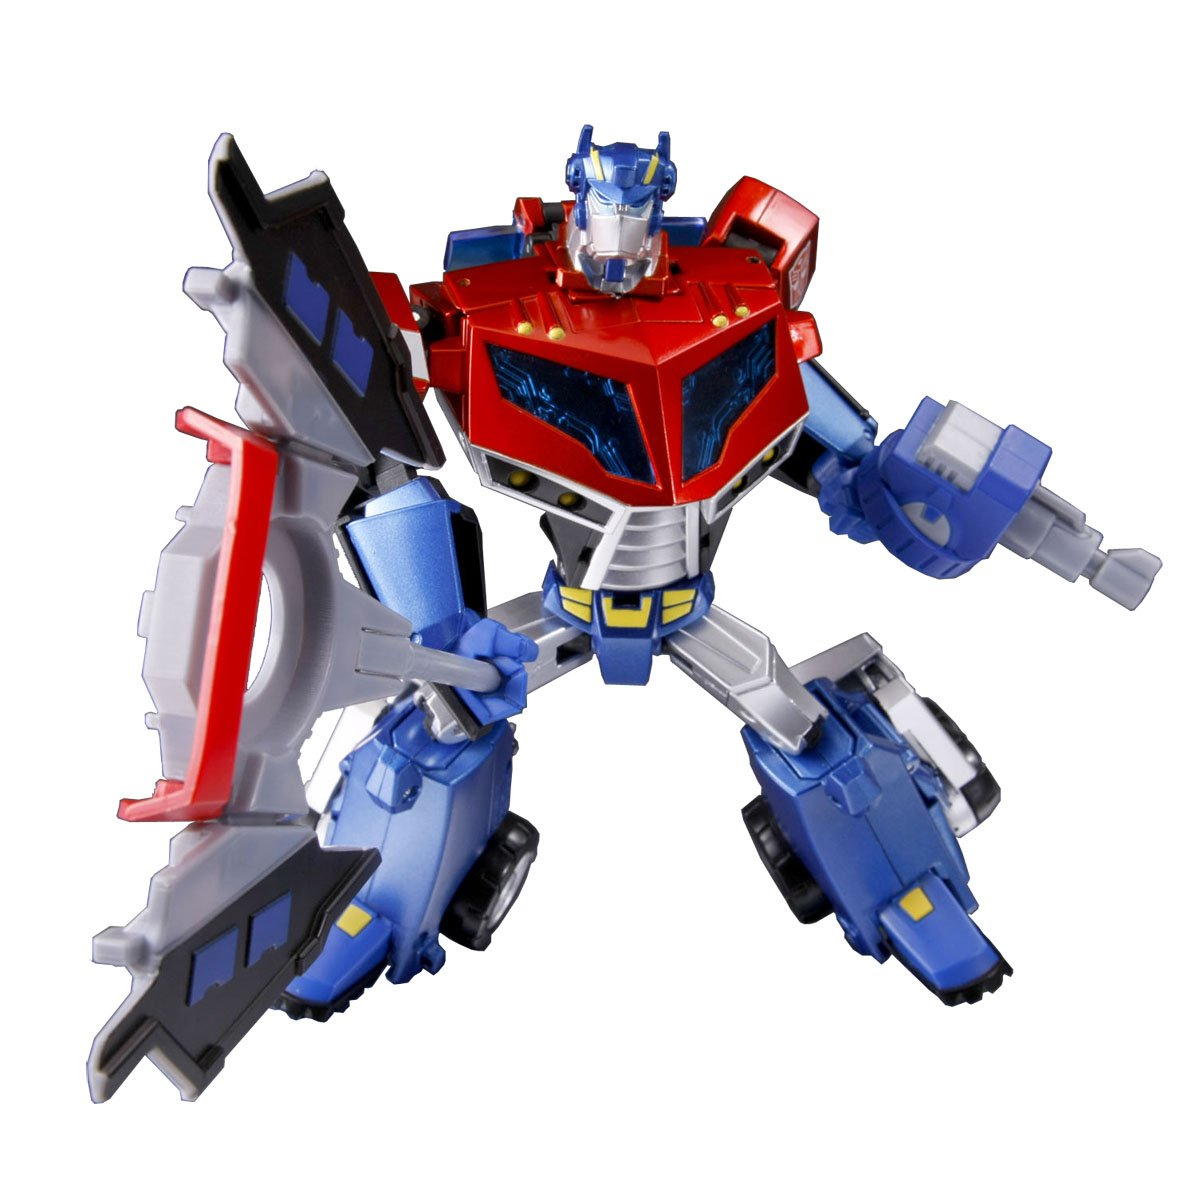 liquidación hasta el 70% Transformers Animated: TA-01 Optimus Prime Action Figure Figure Figure (japan import)  minoristas en línea